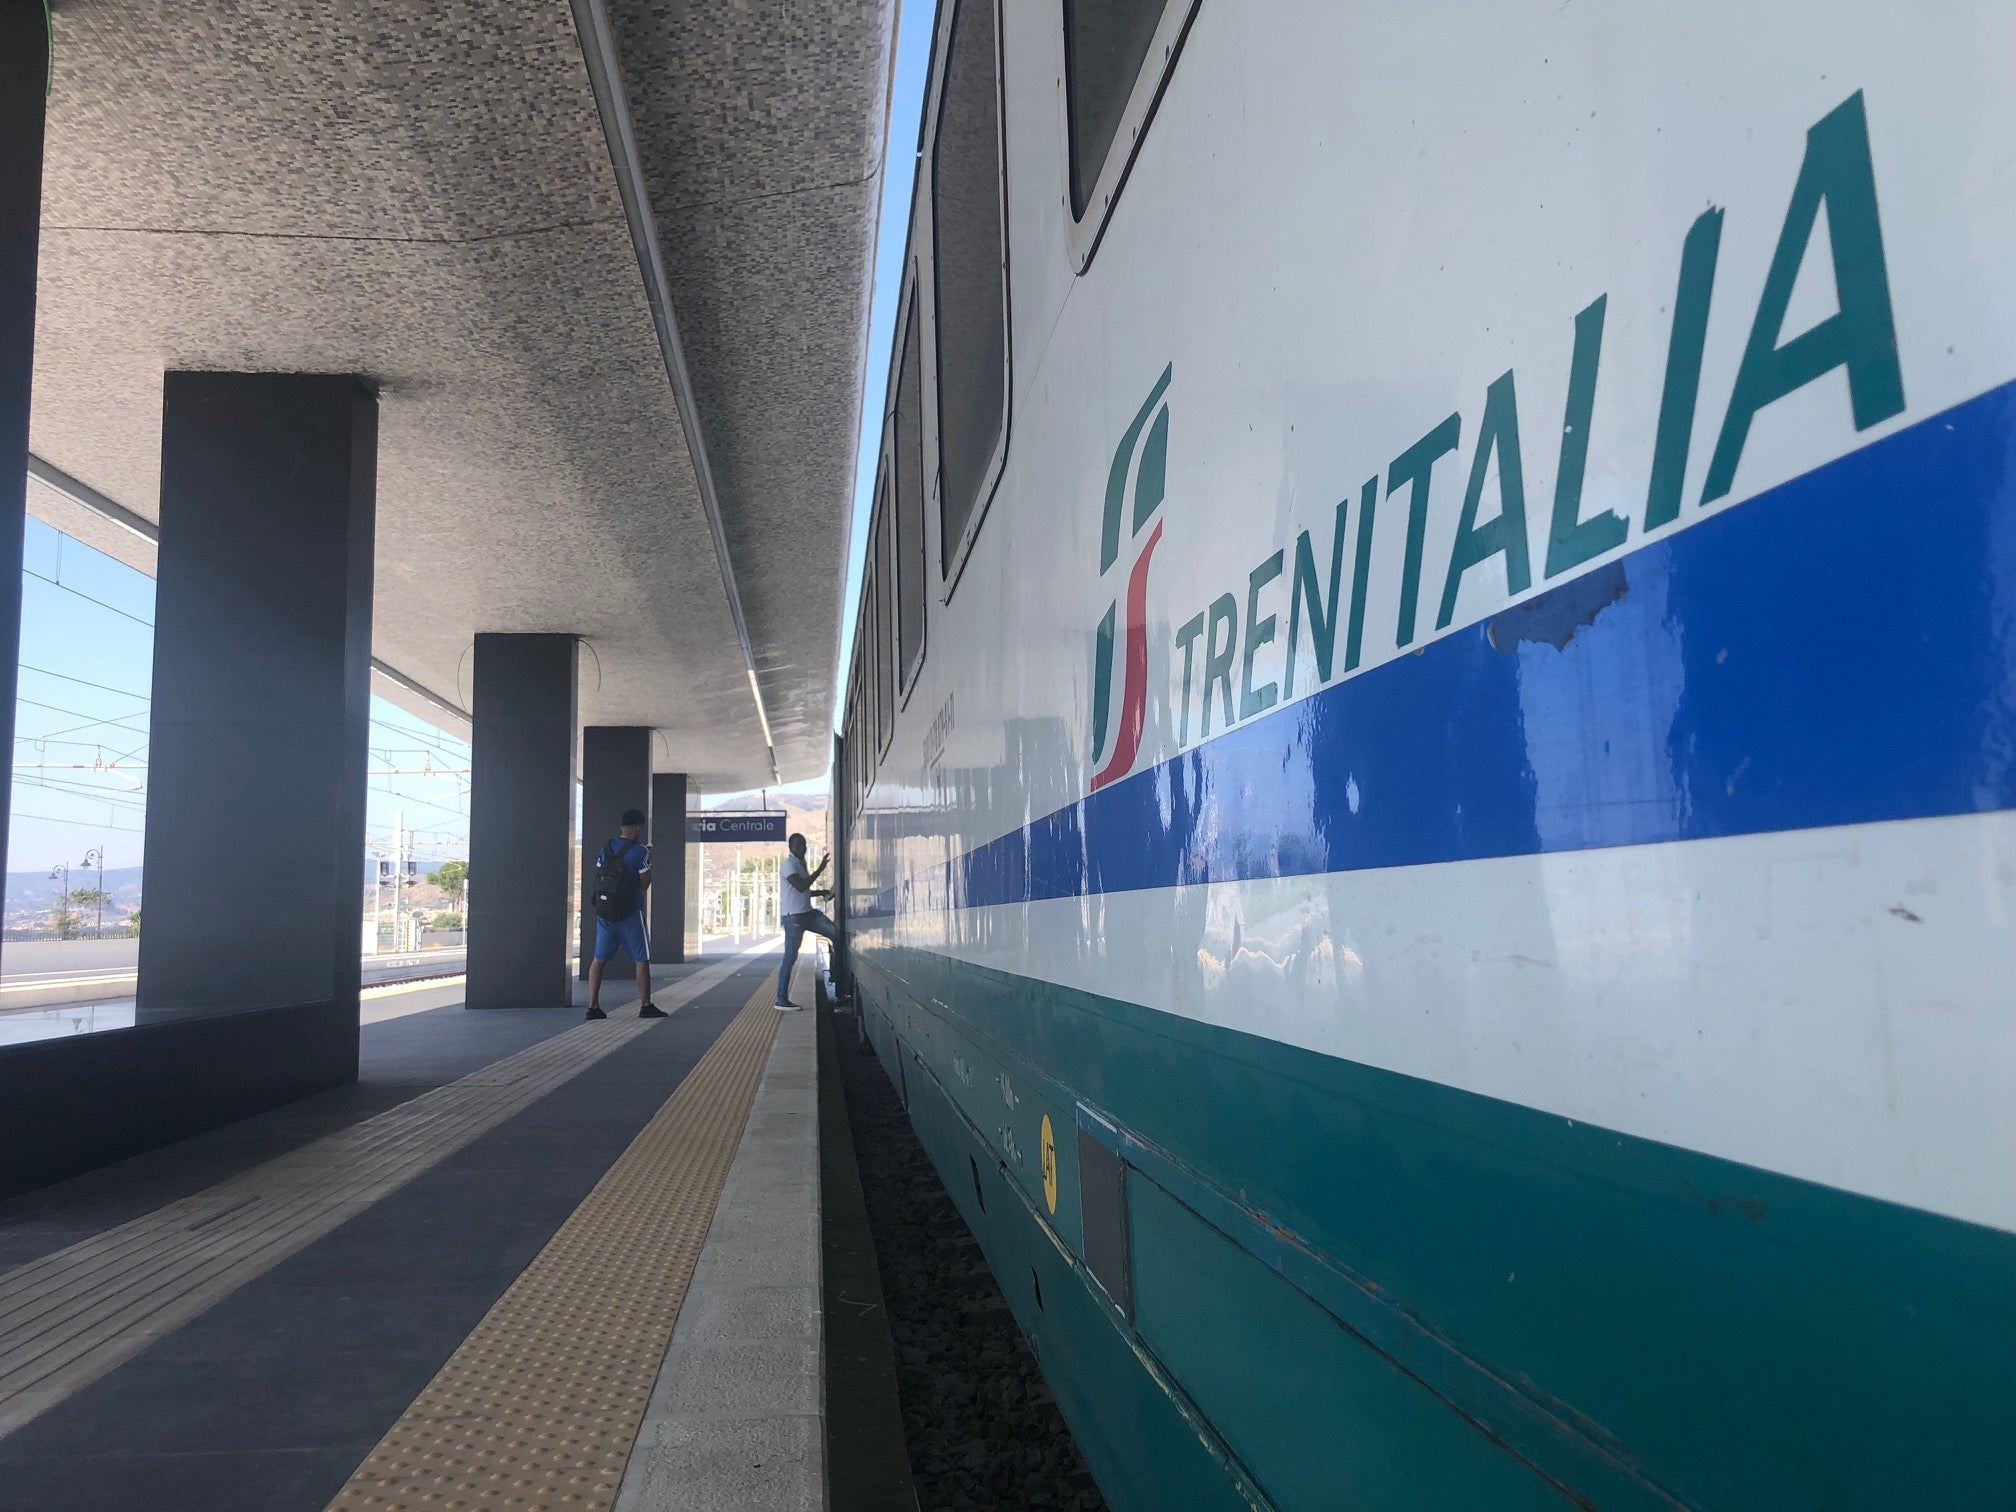 UK to leave European Interrail scheme at the end of 2019